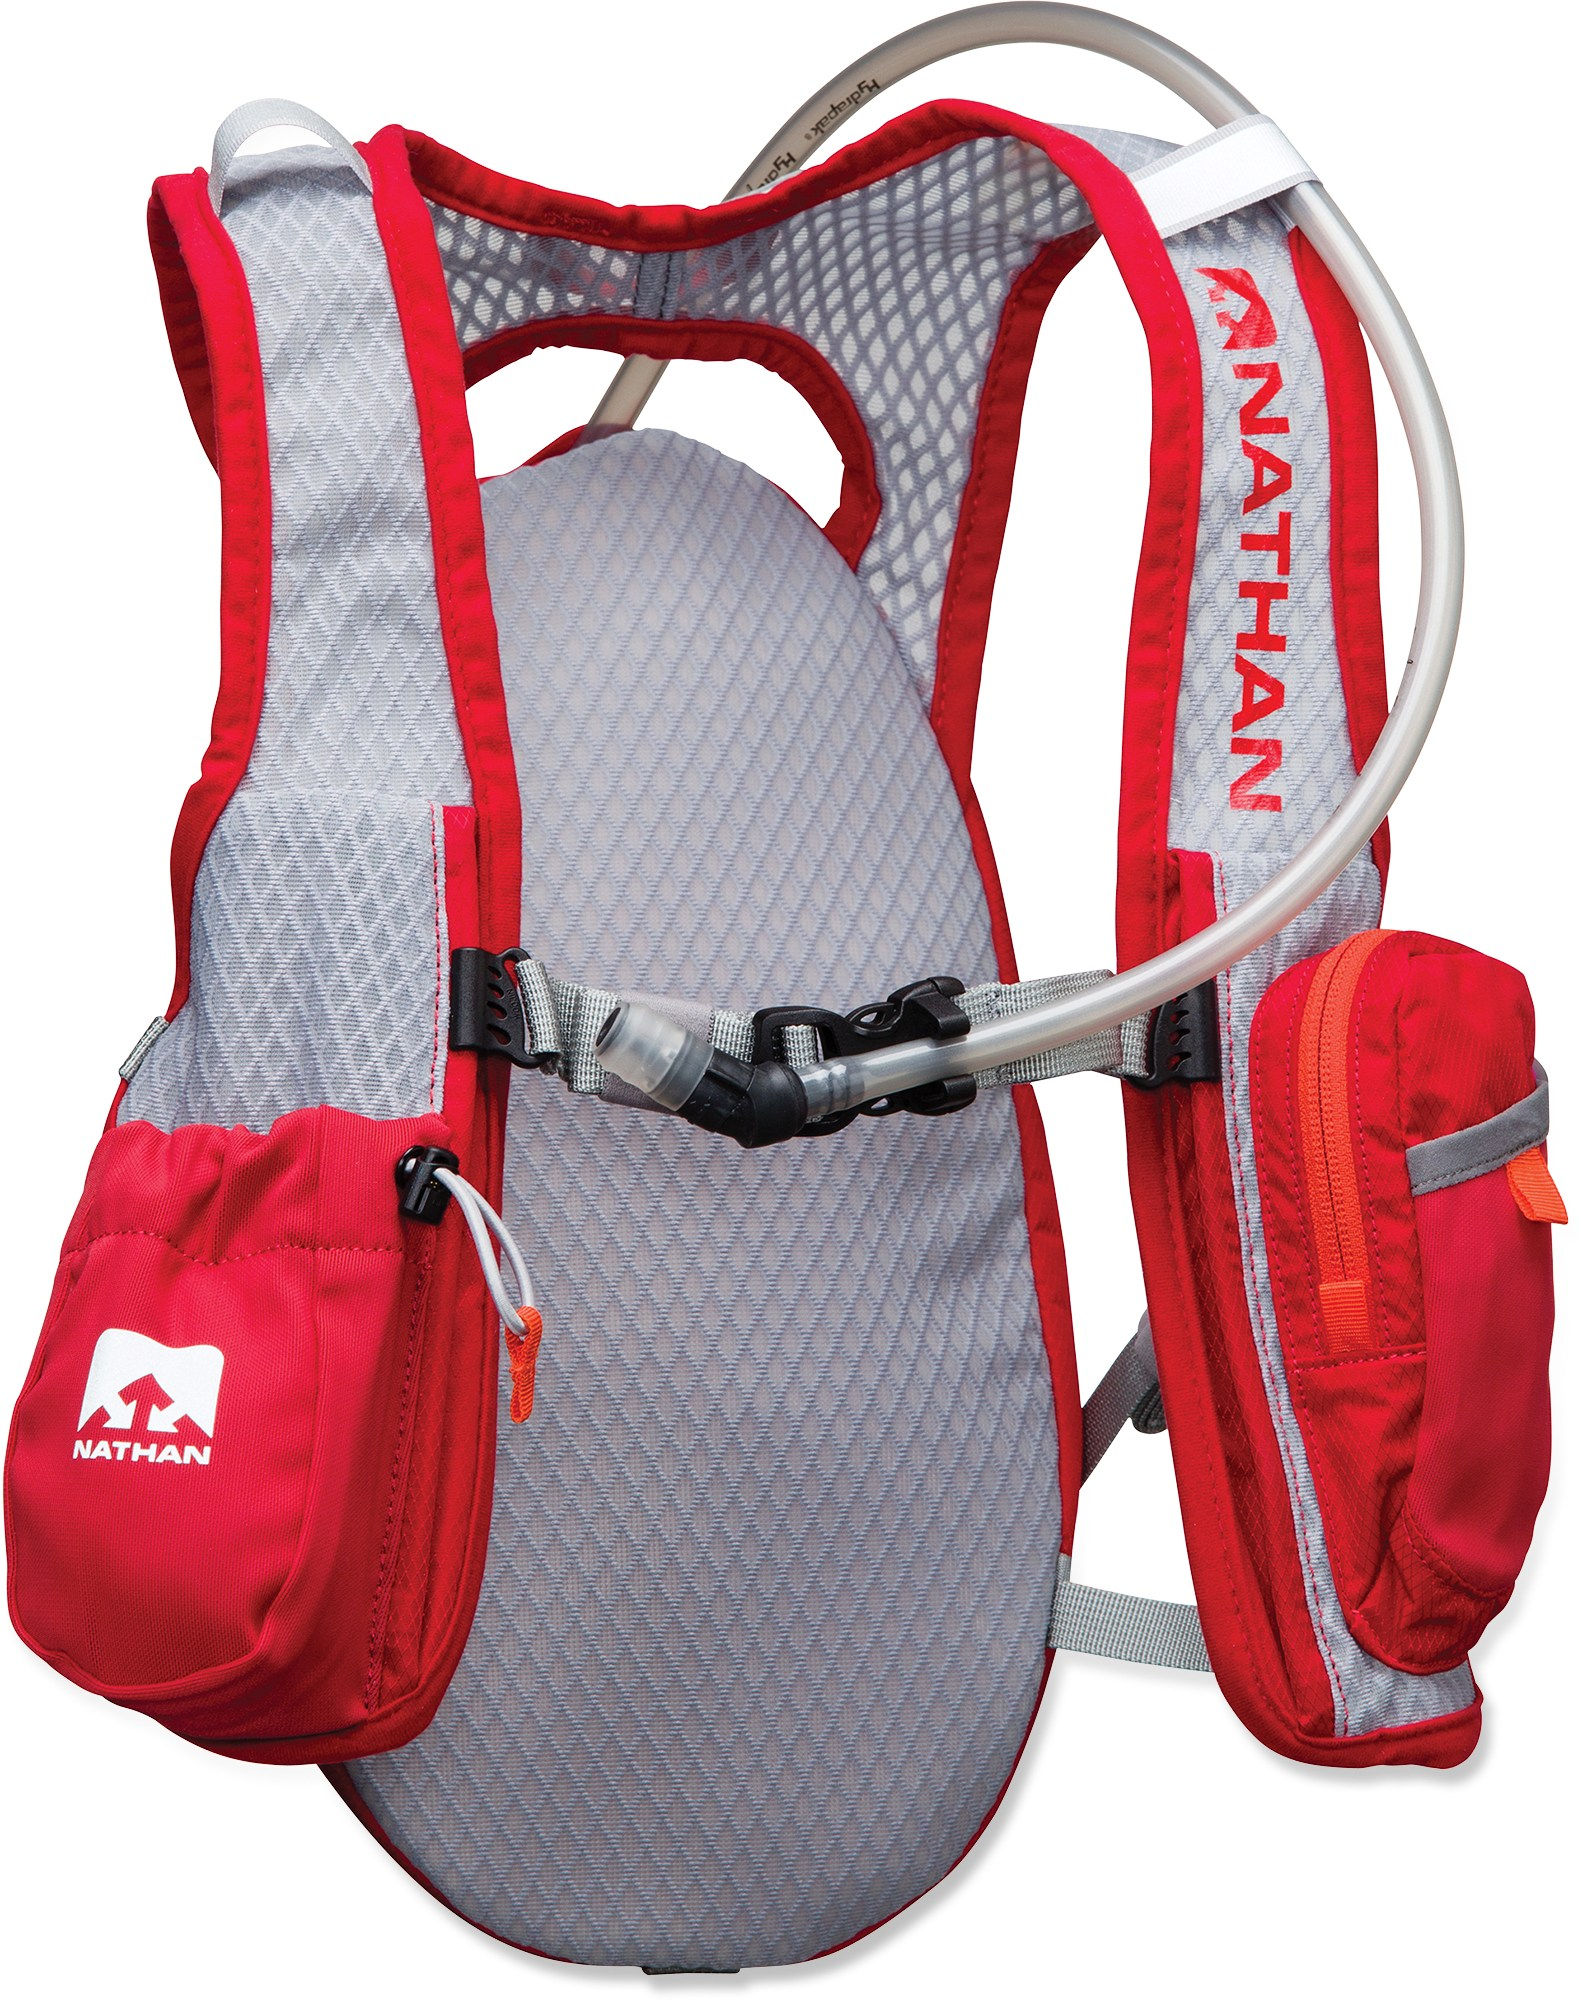 Nathan Intensity Hydration Pack